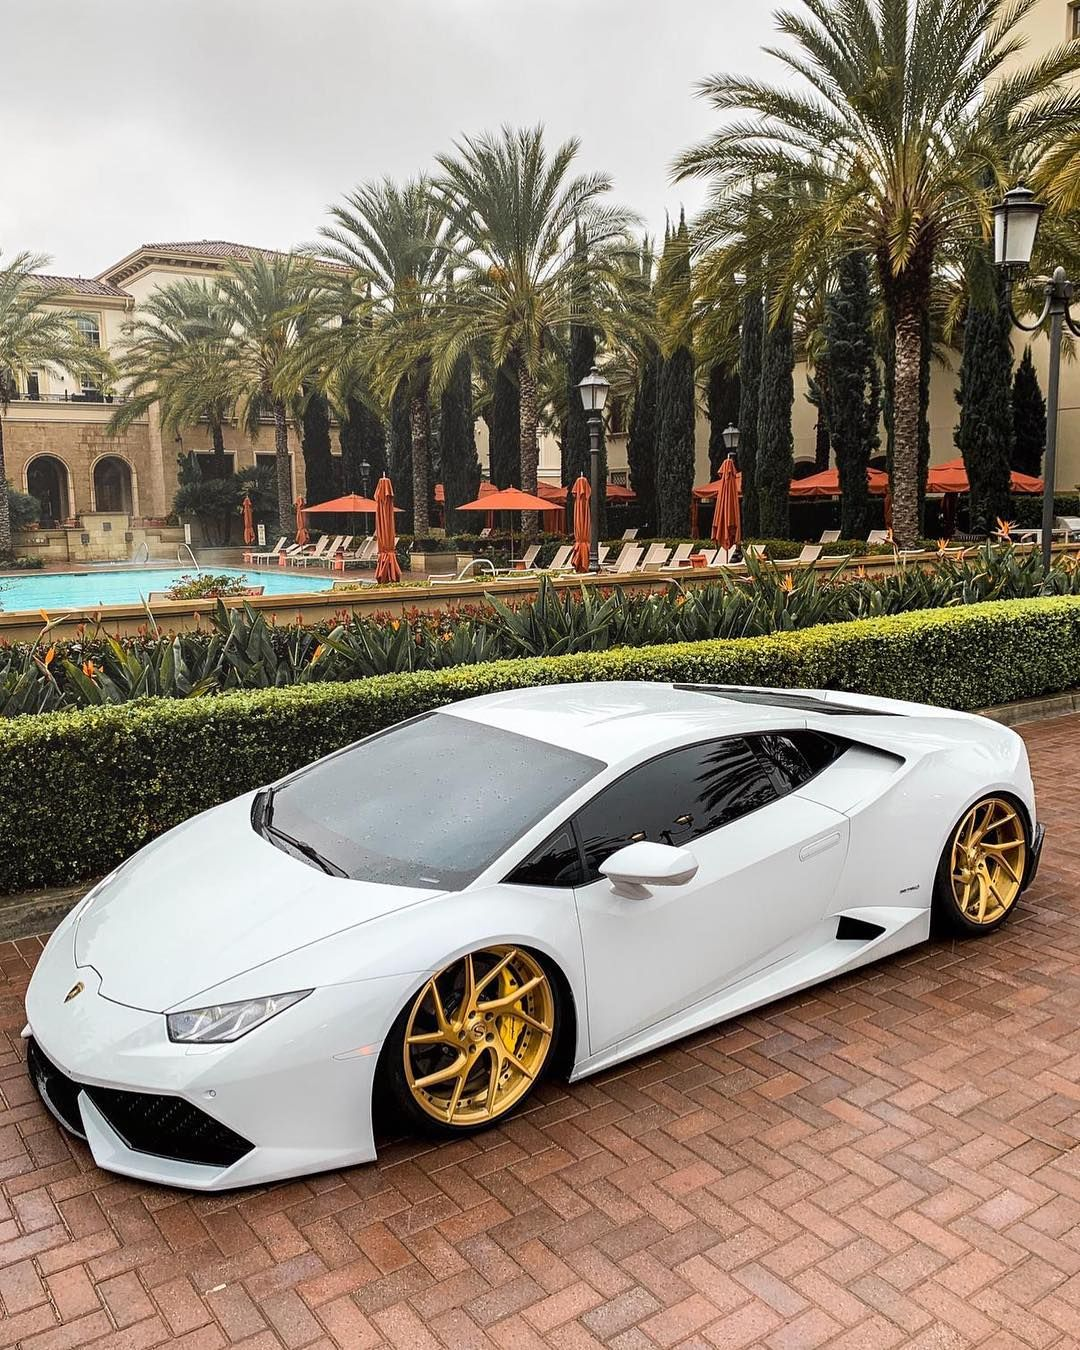 Low Huracan Supercar Old Sports Cars Car Luxury Cars